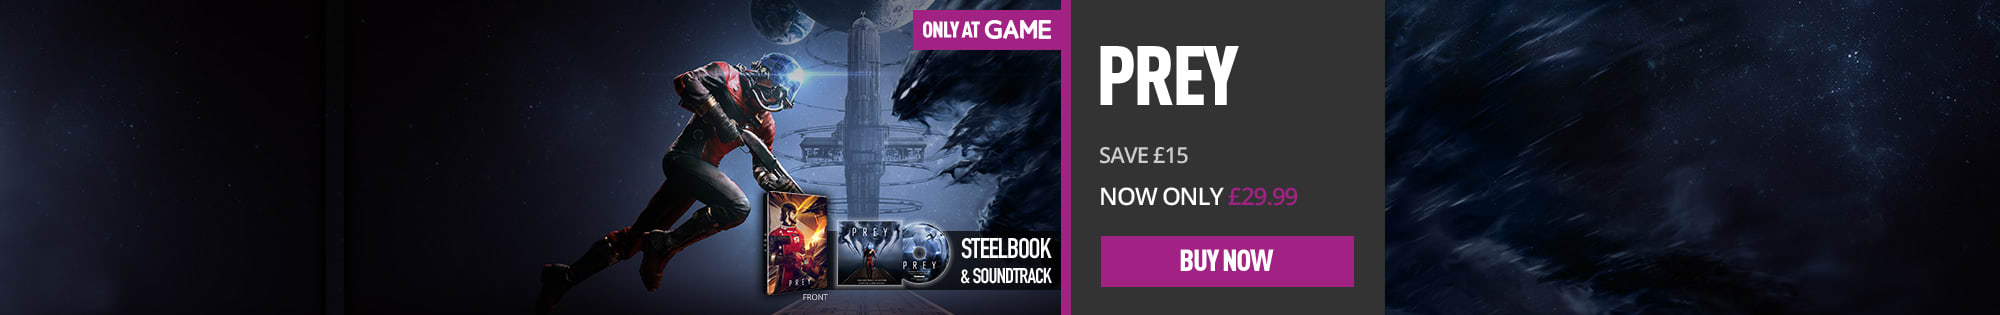 Prey Top Deal for PlayStation 4, Xbox One and PC - Homepage Banner